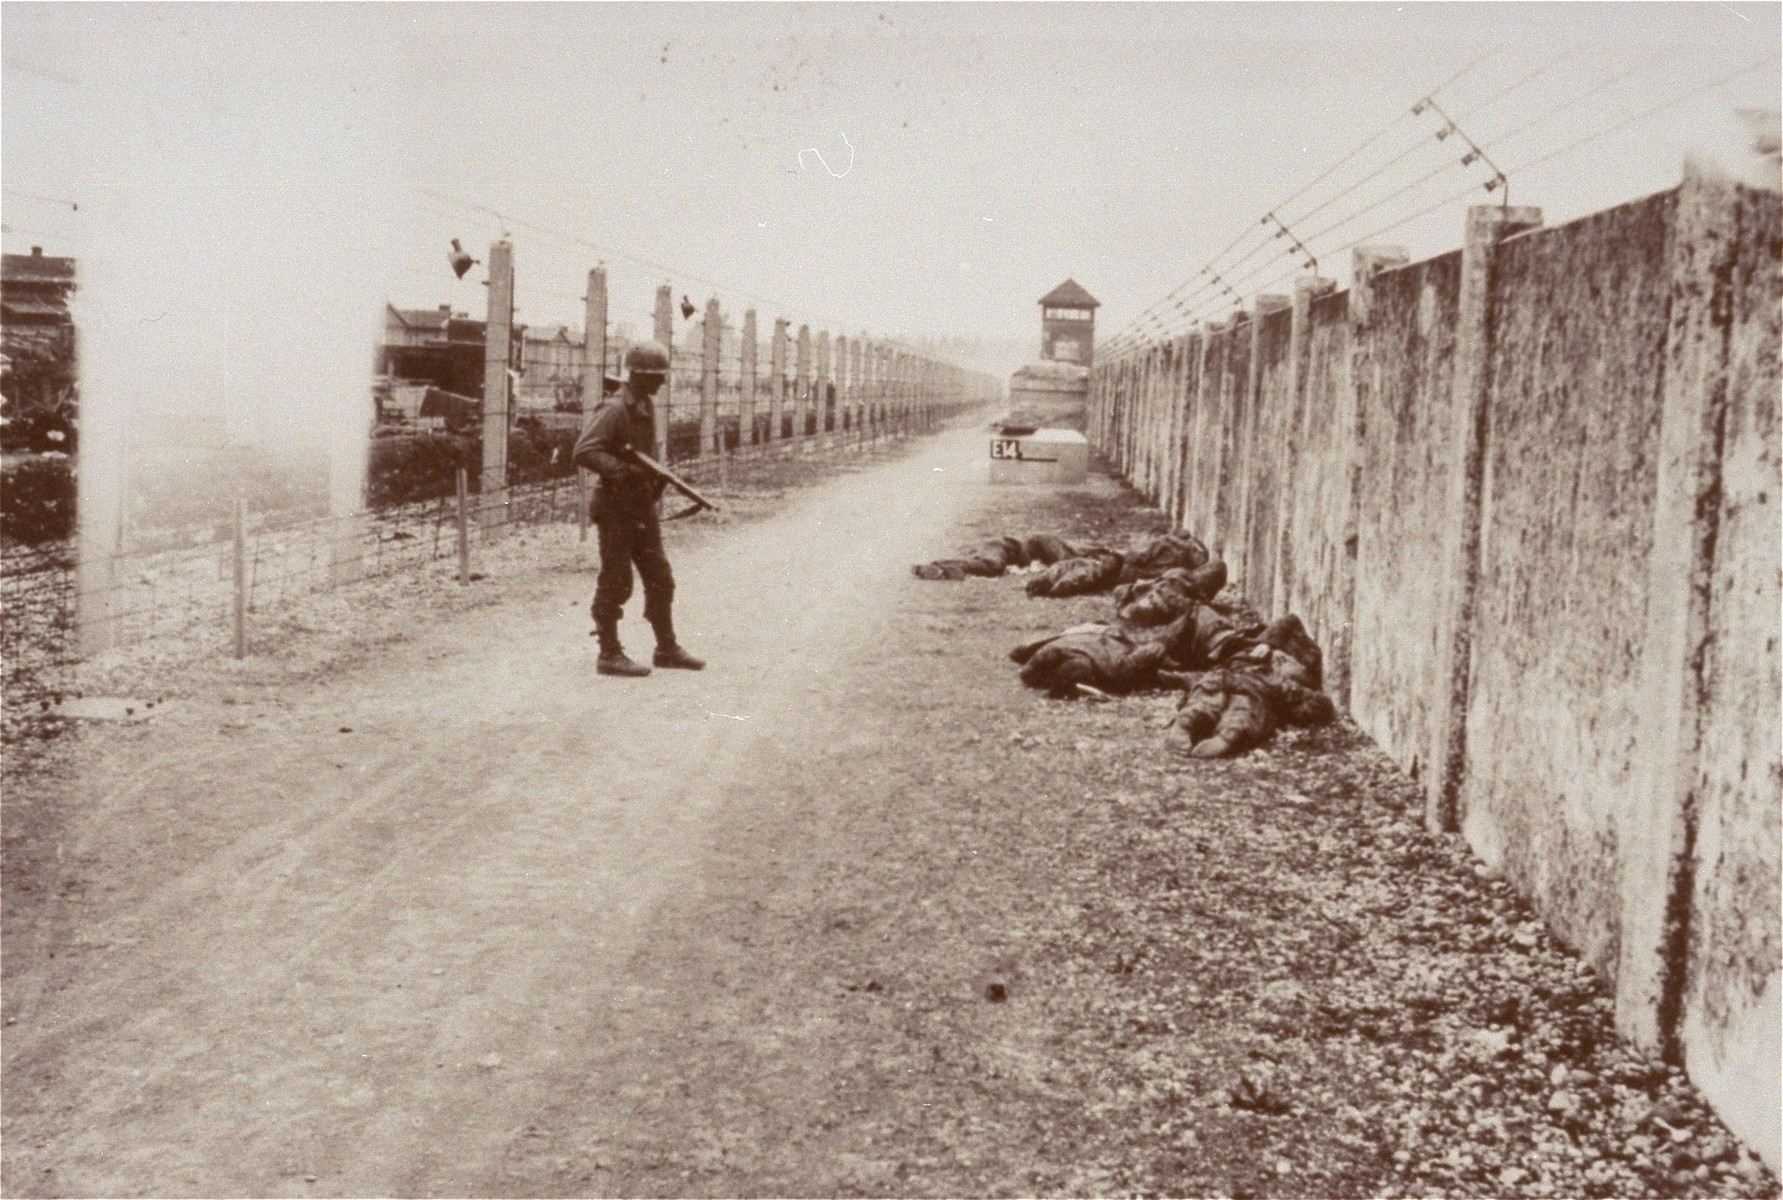 An American soldier stands near the corpses of Dachau guards who were executed just after the liberation of the camp.